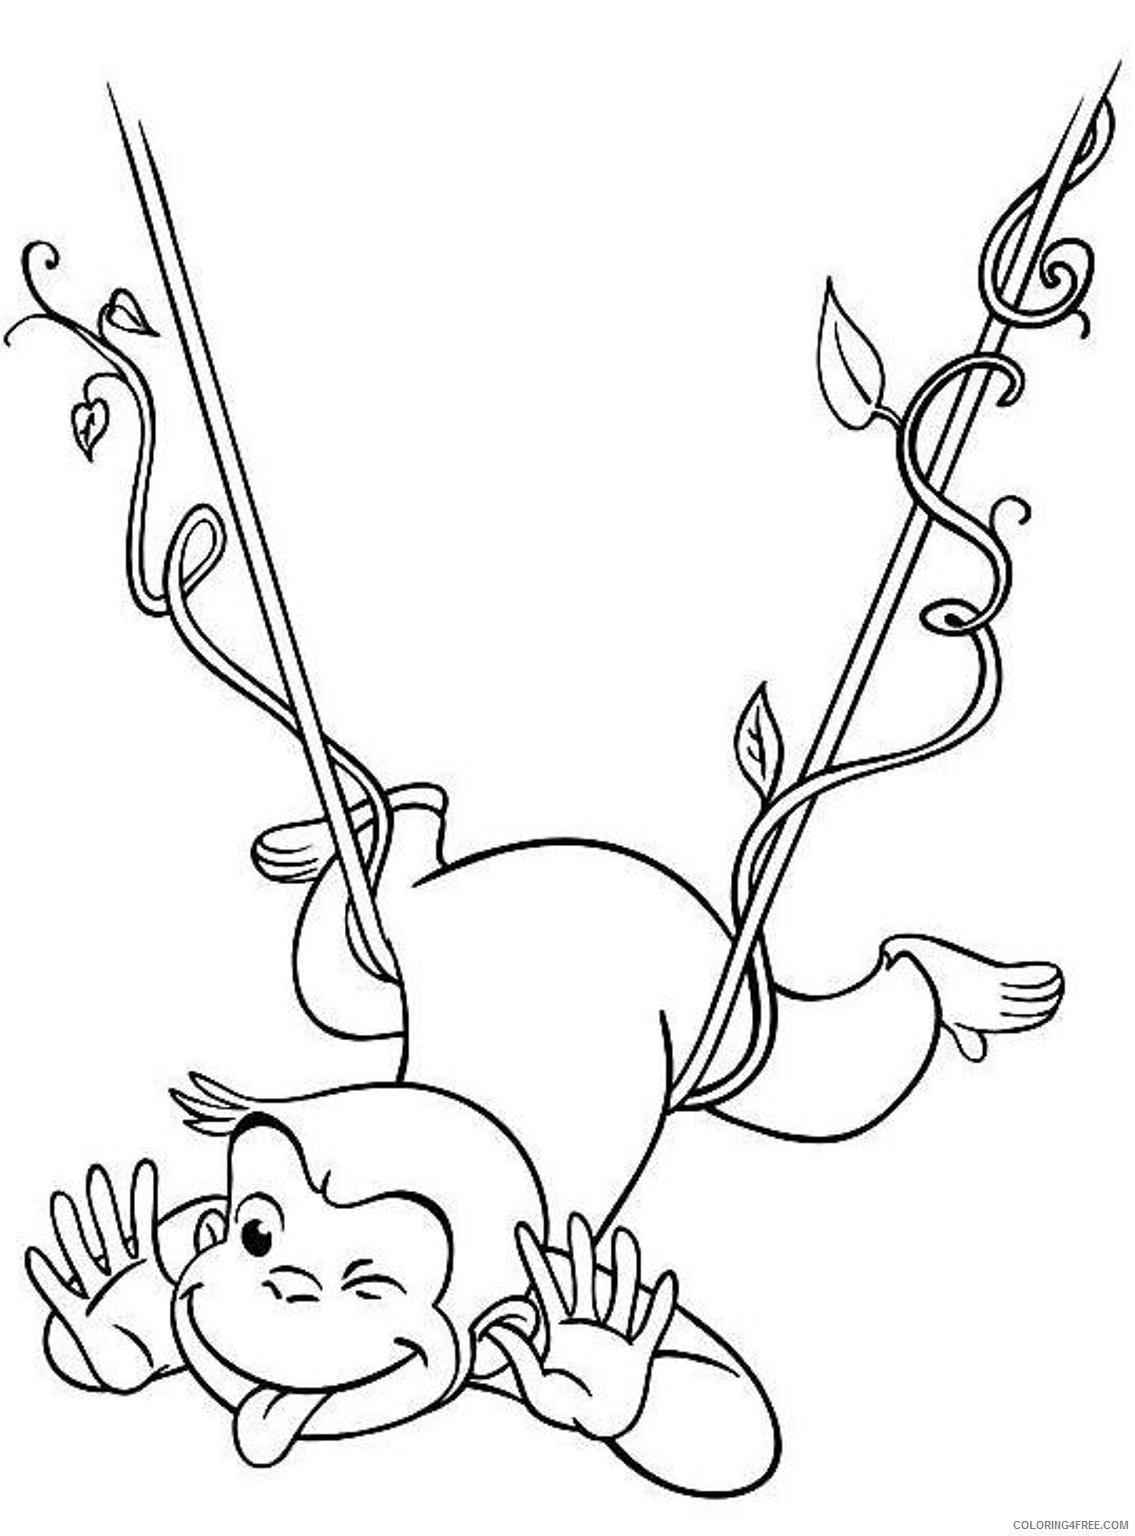 curious george coloring pages swinging Coloring4free